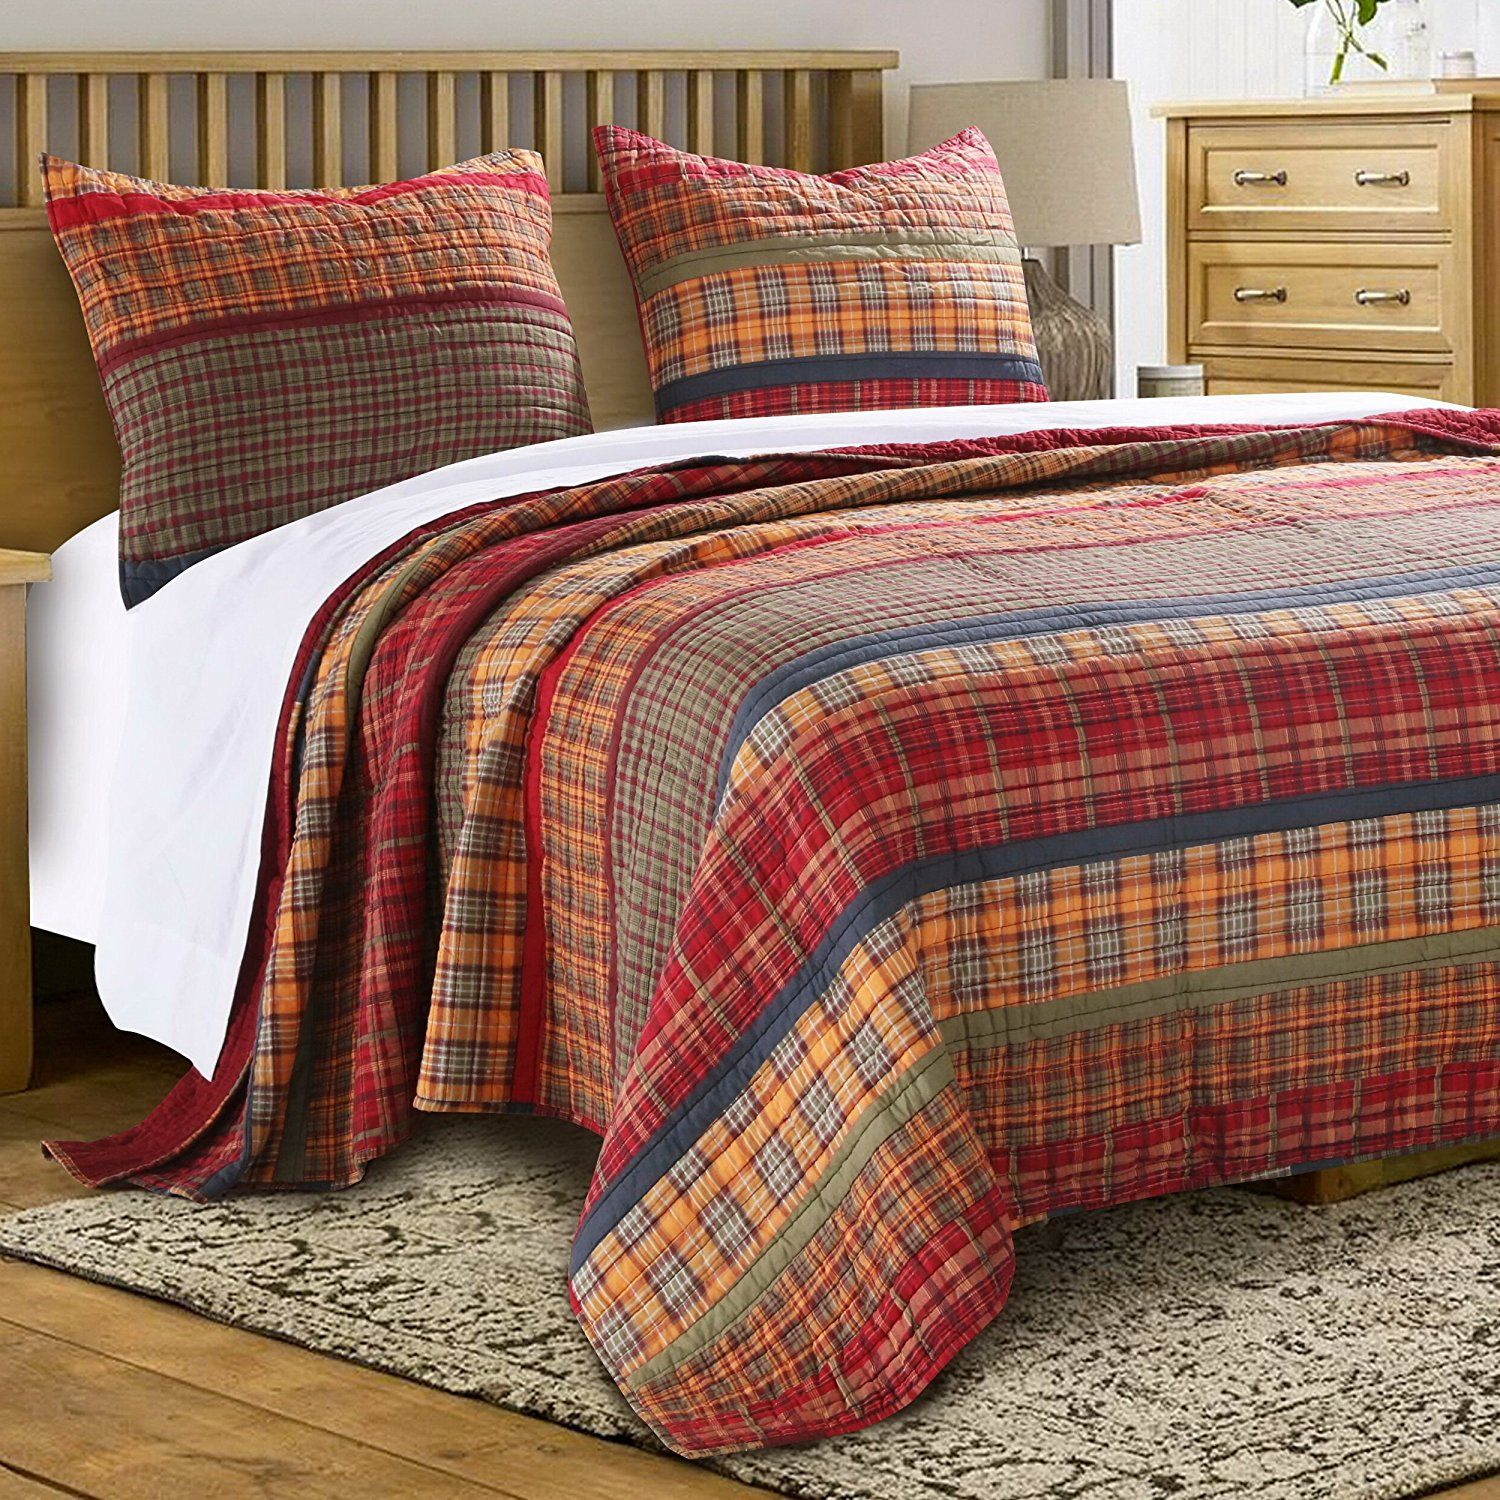 Tuscan Color Bedspread Love The Colors And Style Quilt